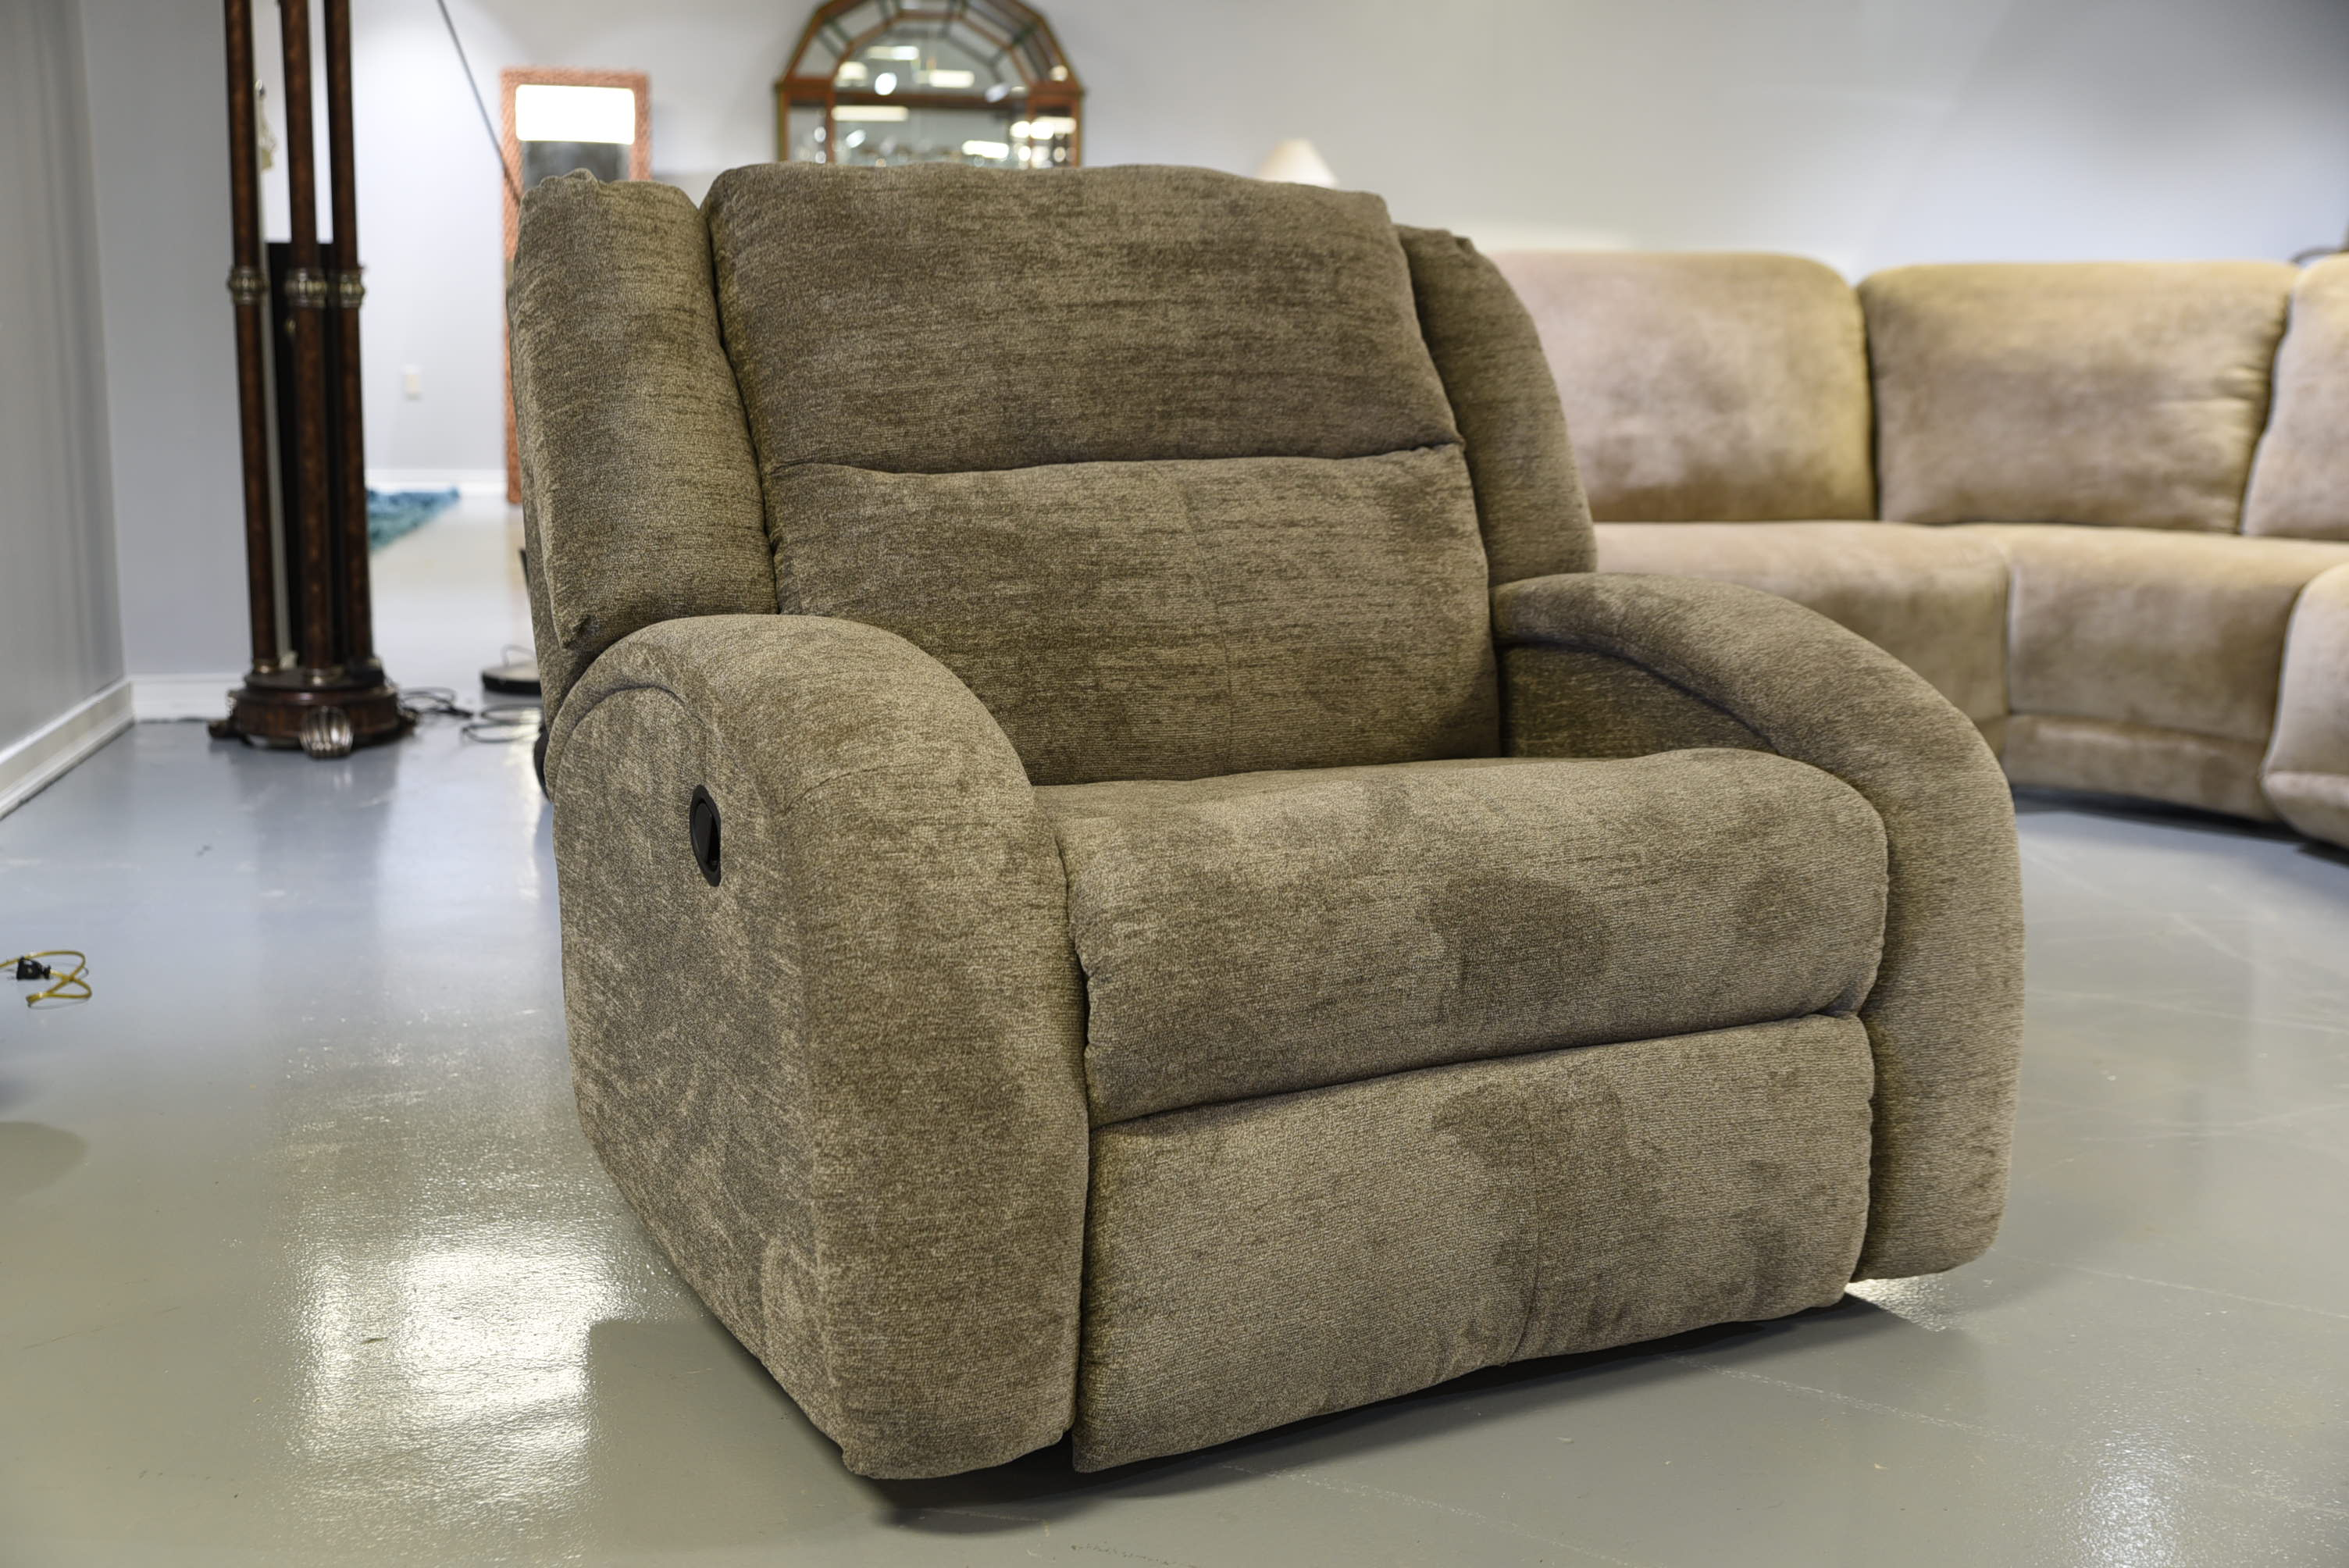 Double Wide Recliner Chair Layflat Extra Wide Double Reclining Sofa Blum 39s